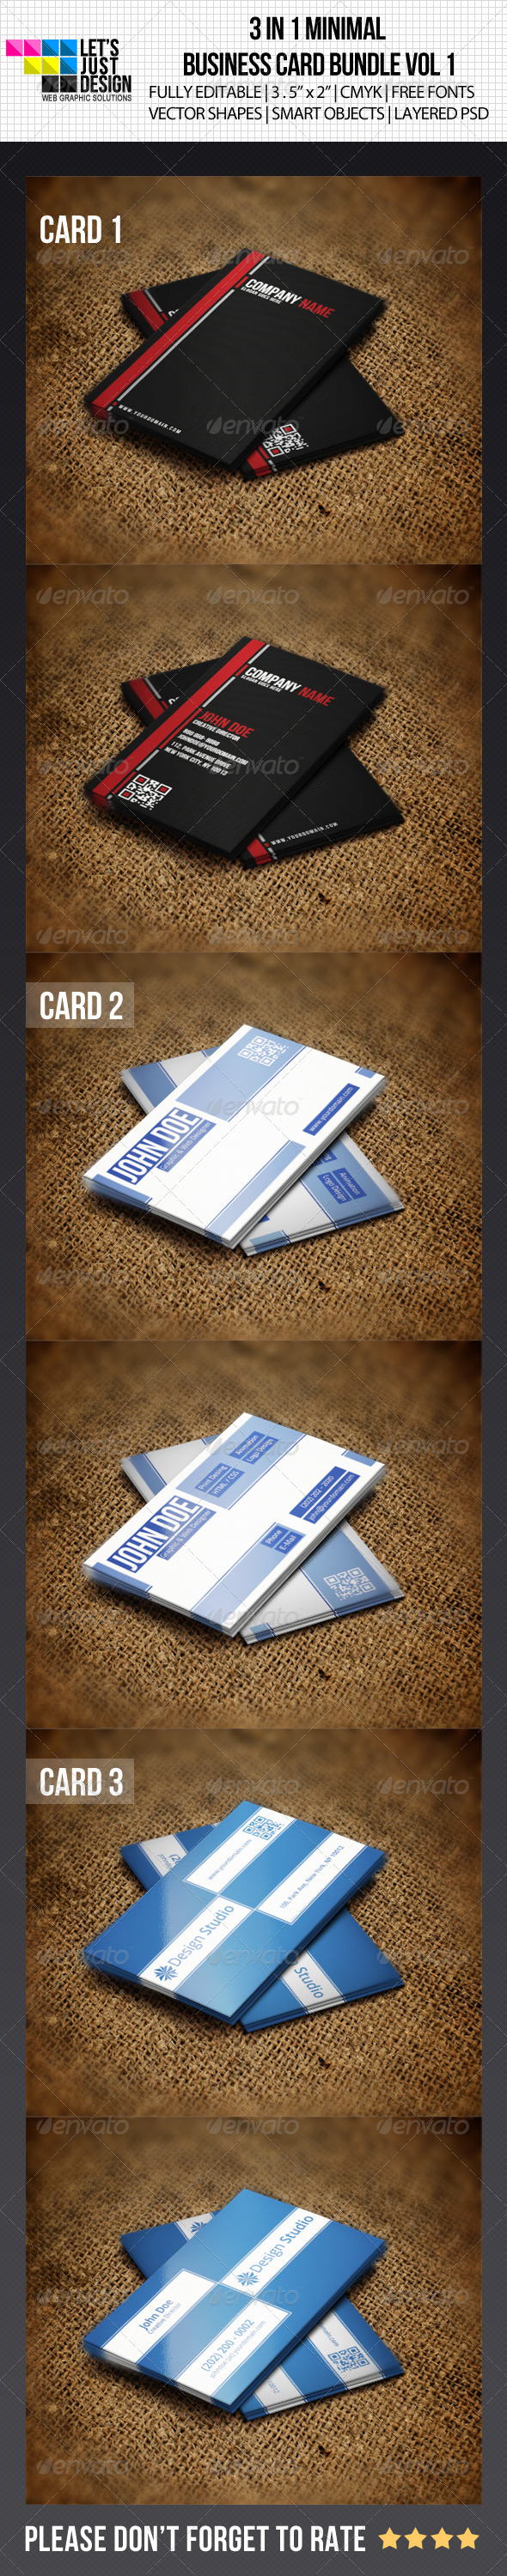 GraphicRiver 3 IN 1 Corporate Business Card Bundle Vol 1 4857920